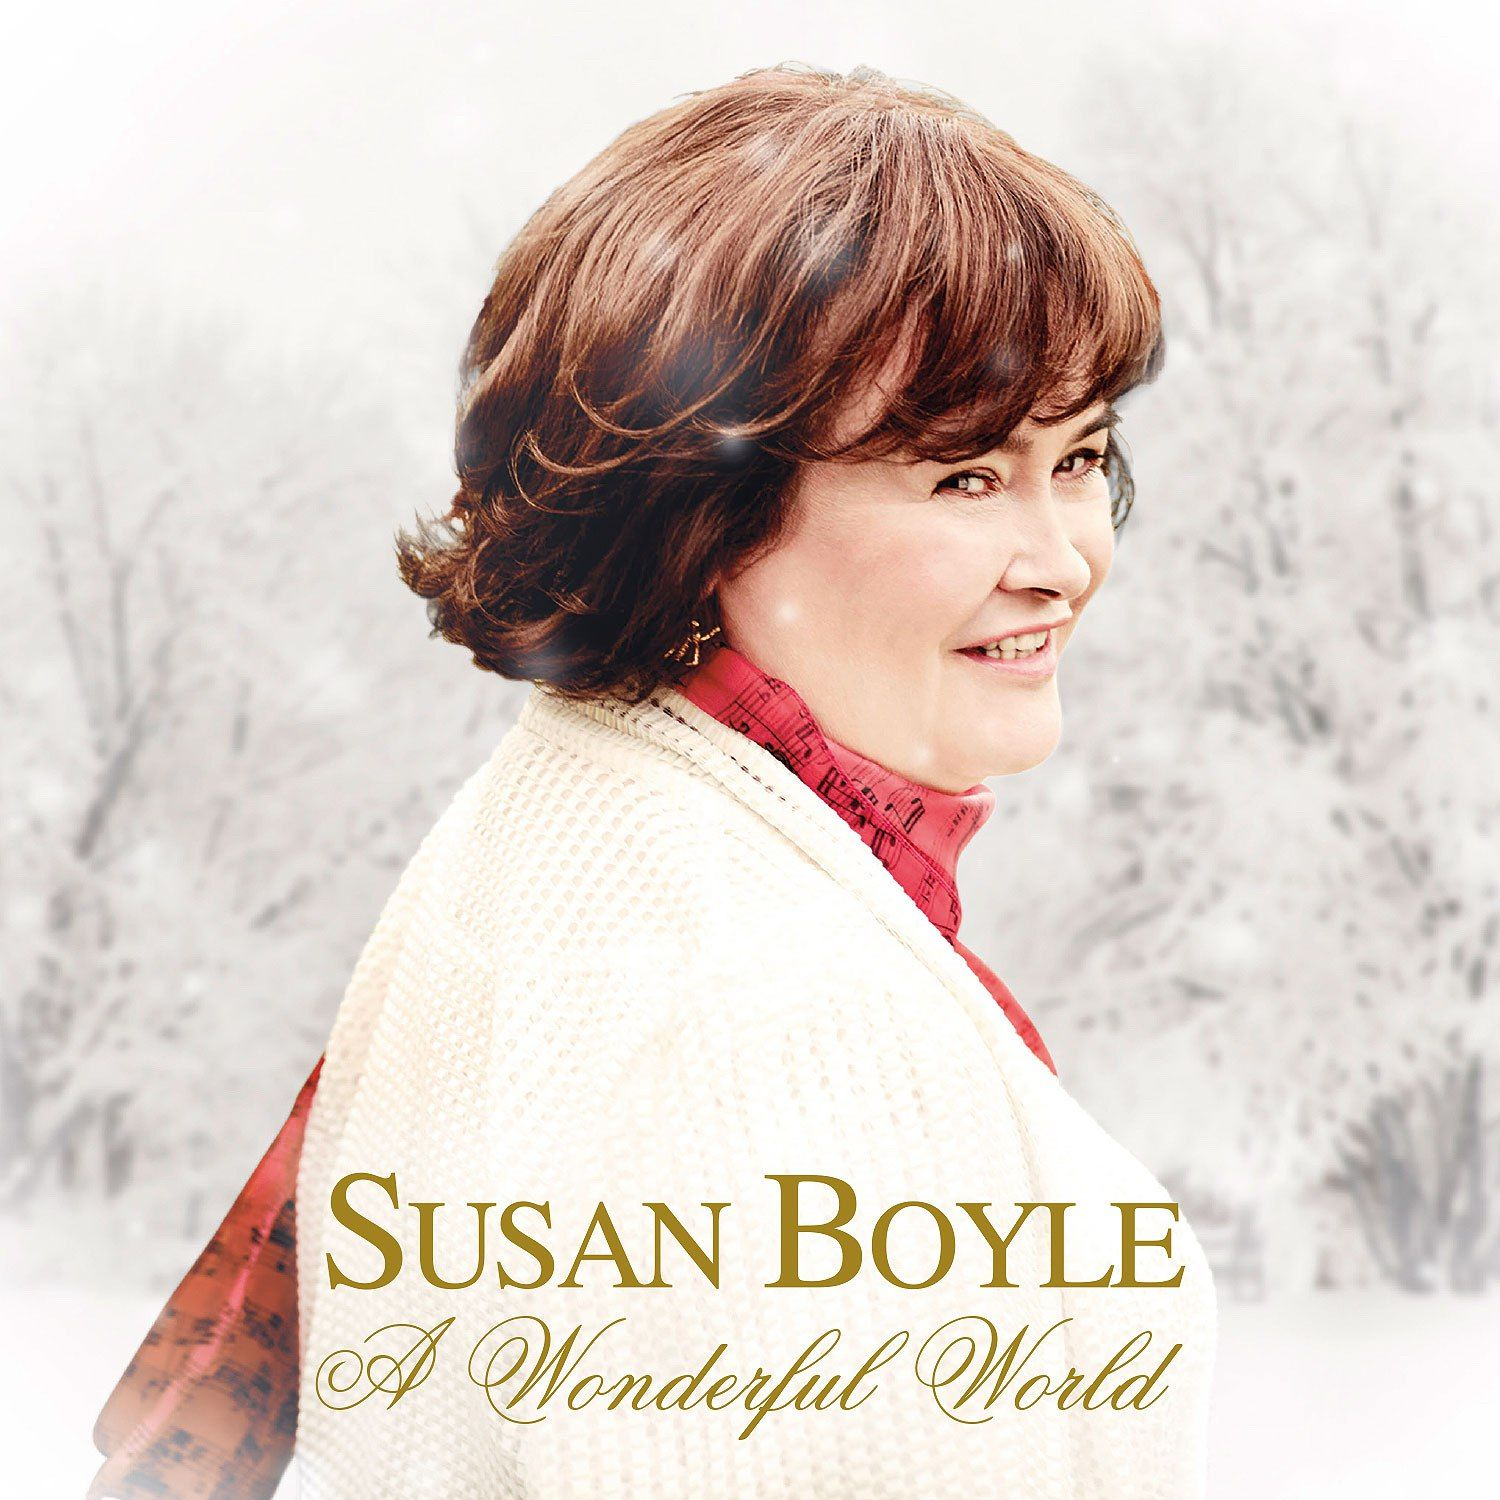 susan boyle is back on track with new christmas album